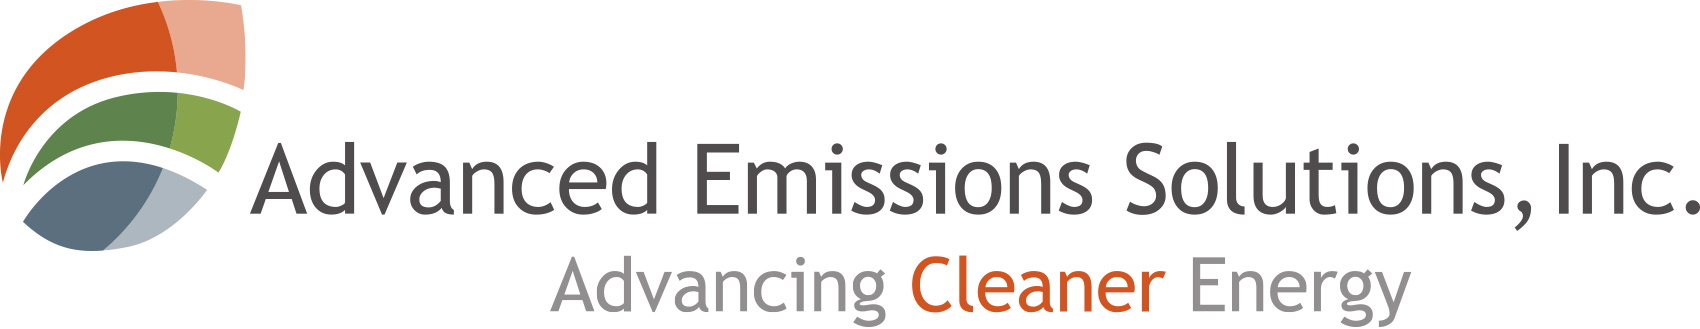 Advanced Emissions Solutions Reports Fourth Quarter and Full Year 2018 Results